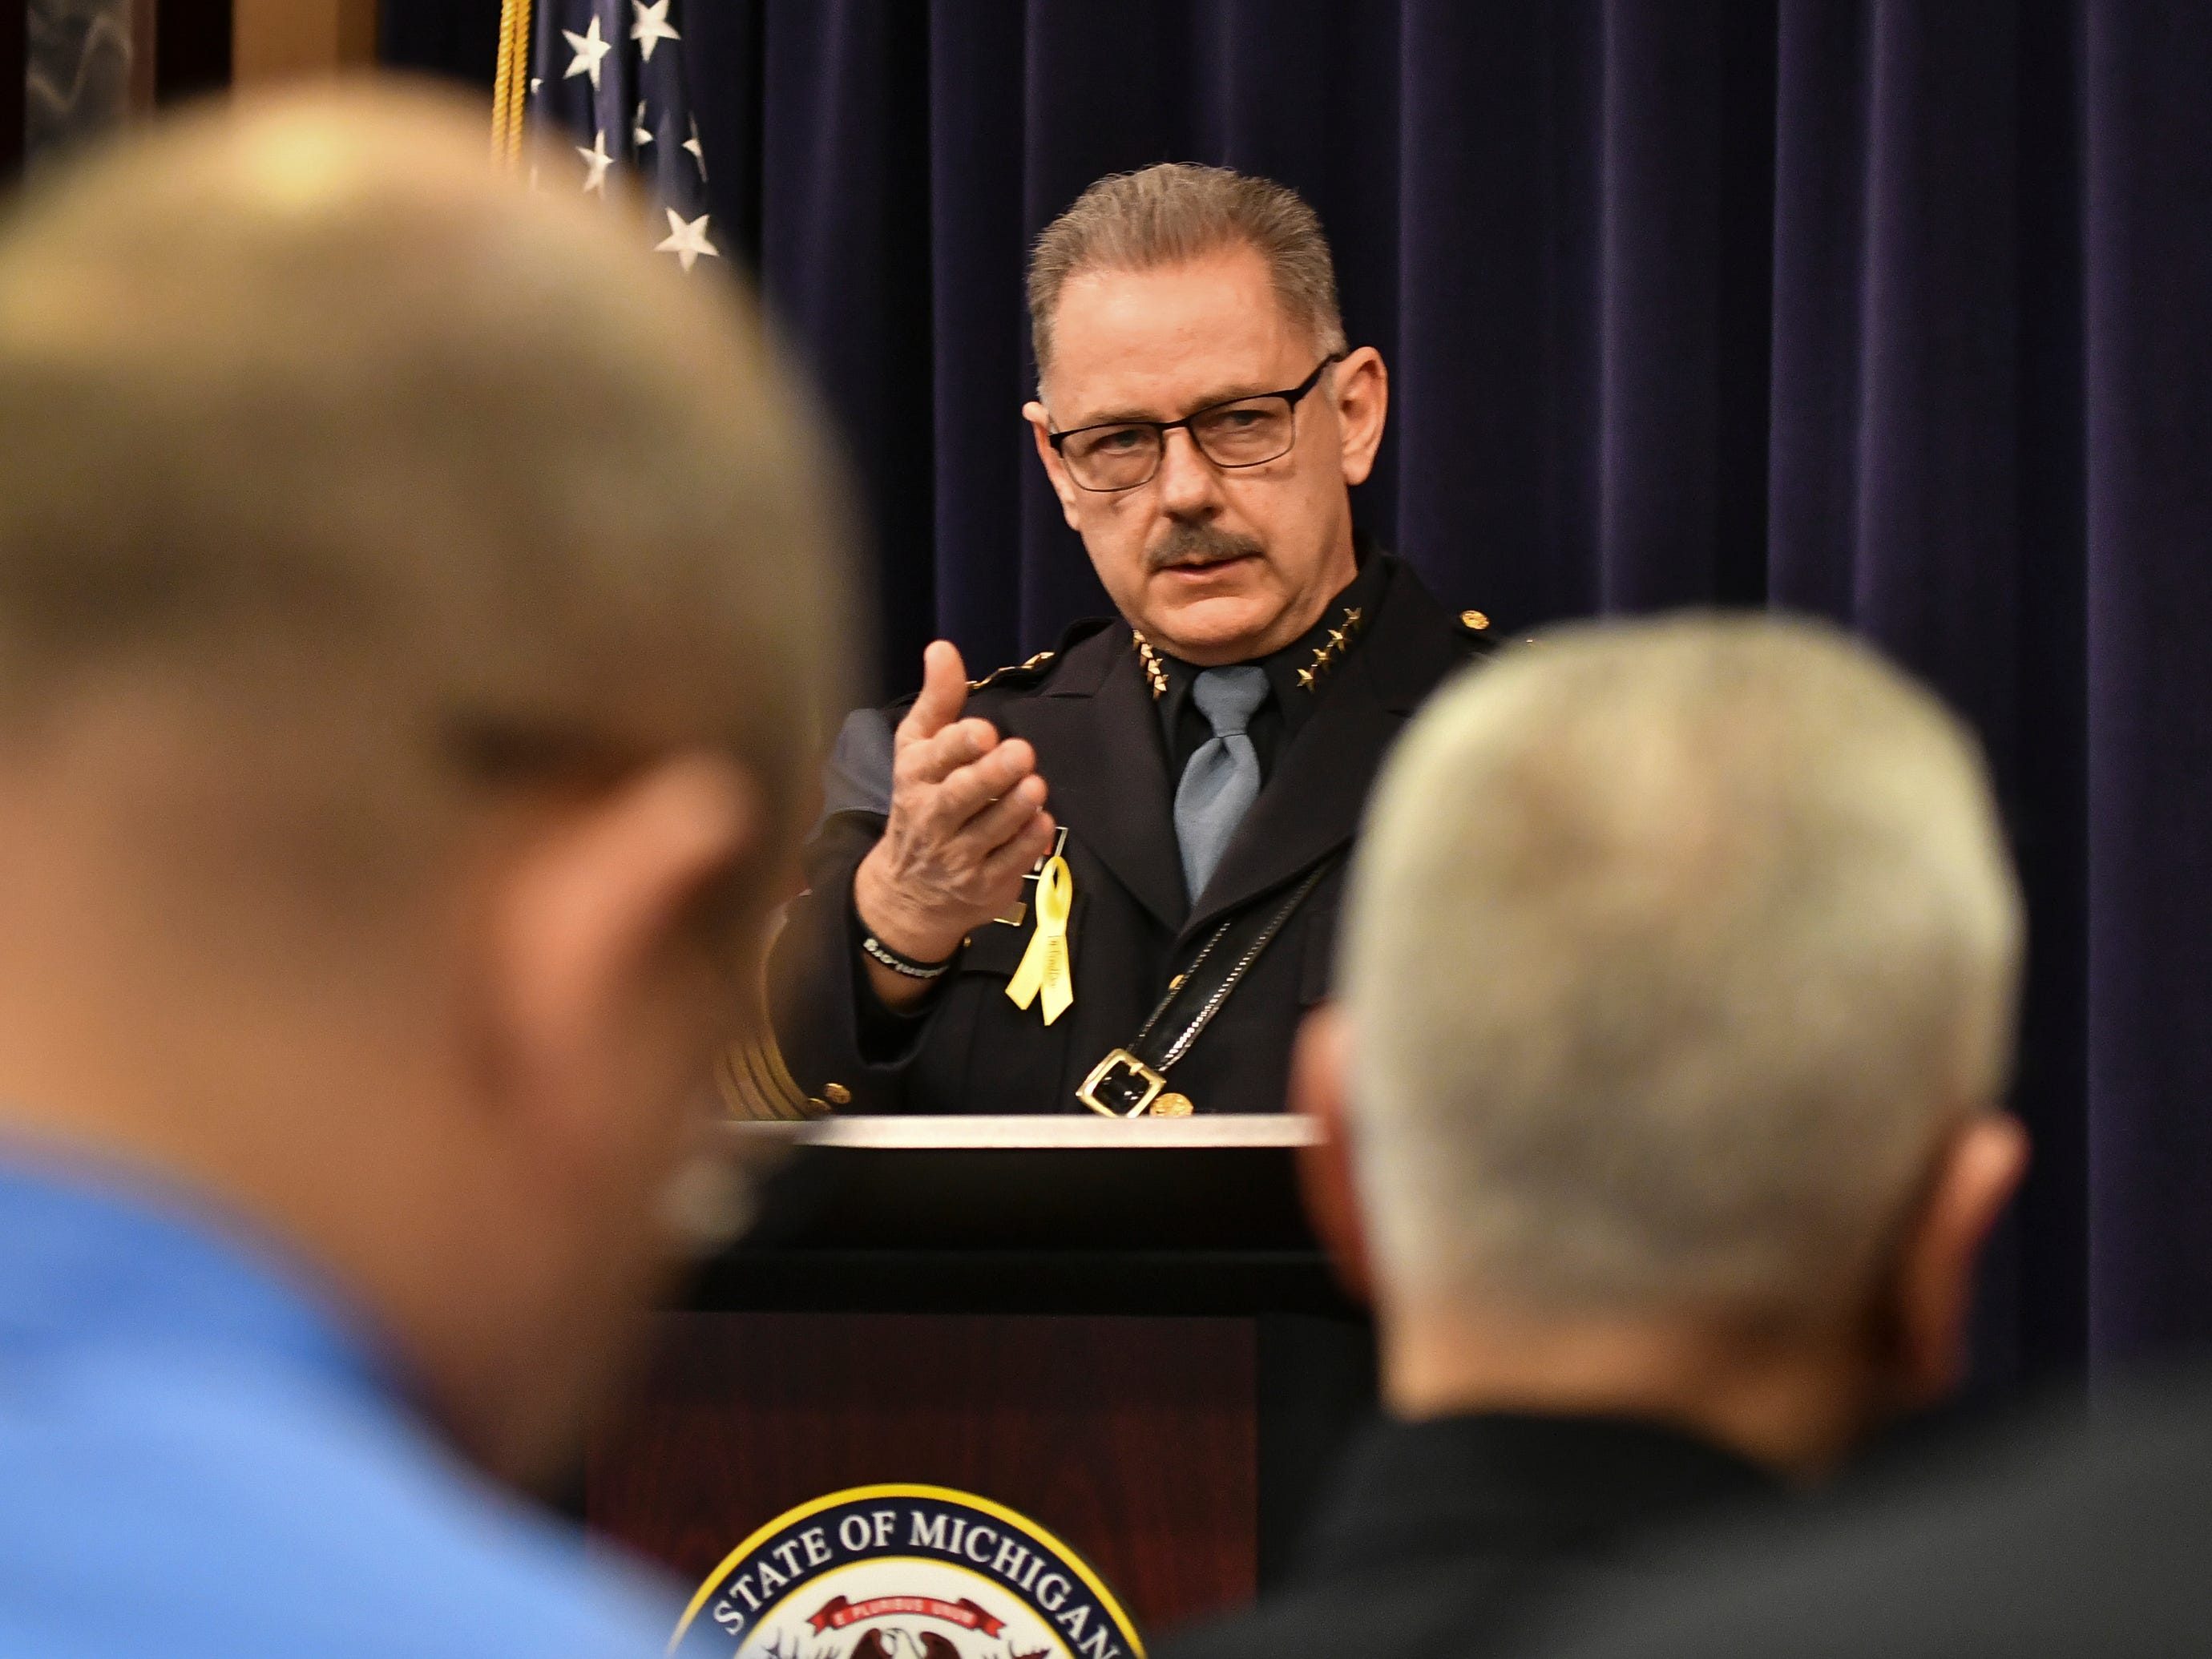 Farmington Hills Police Chief Charles Nebus speaks Tuesday, March 5, 2019, at the Attorney General's office in downtown Lansing where Attorney General Dana Nessel announced her office has filed first degree pre-meditated murder against Floyd Calloway, Jr., for the murder of Danielle Stislicki.  The 28-year-old disappeared from a parking lot in Dec. of 2016, and has never been found.